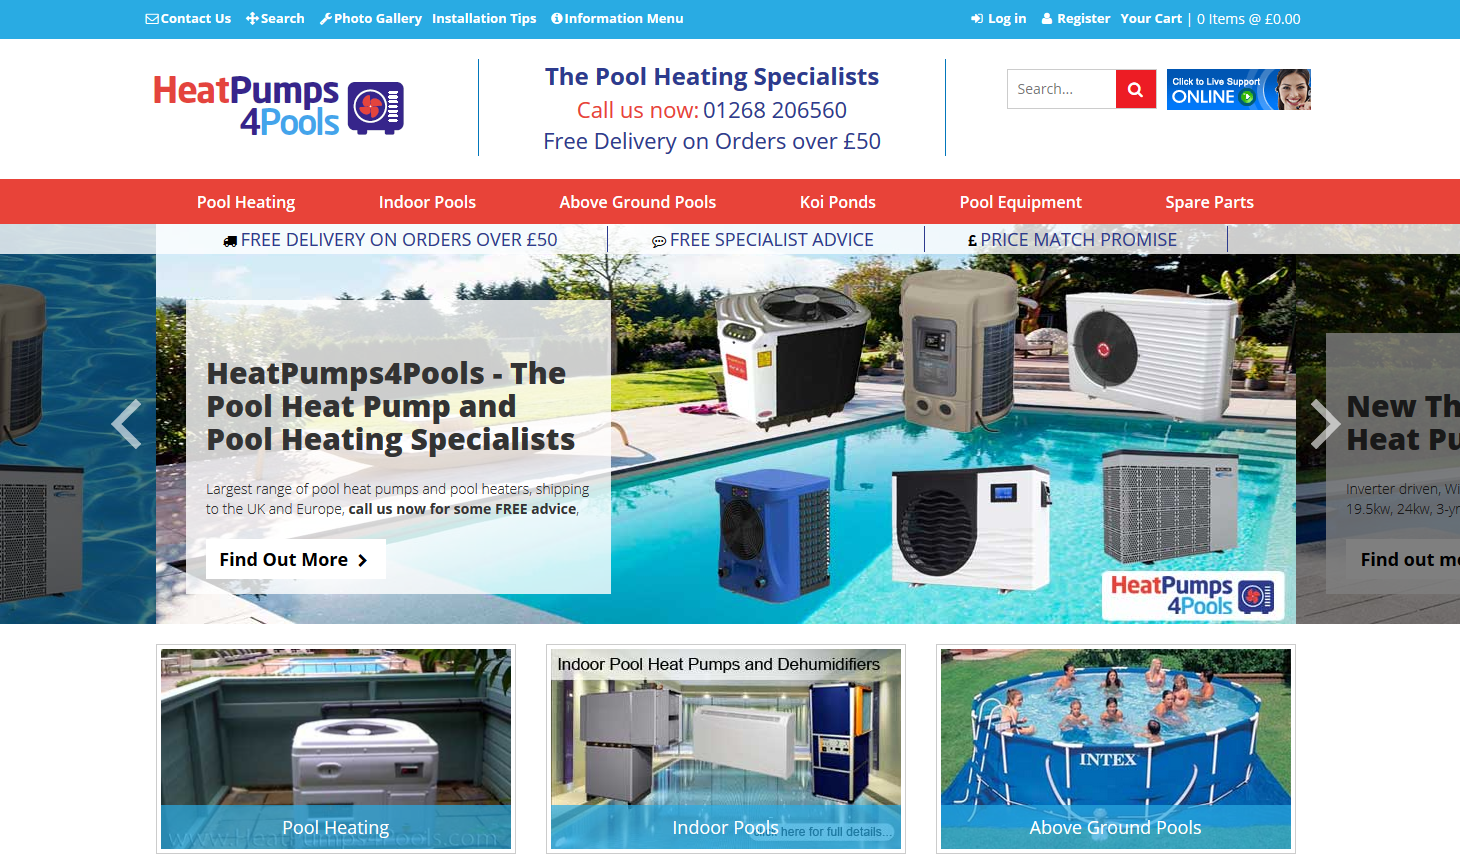 HeatPumps4Pools Ltd